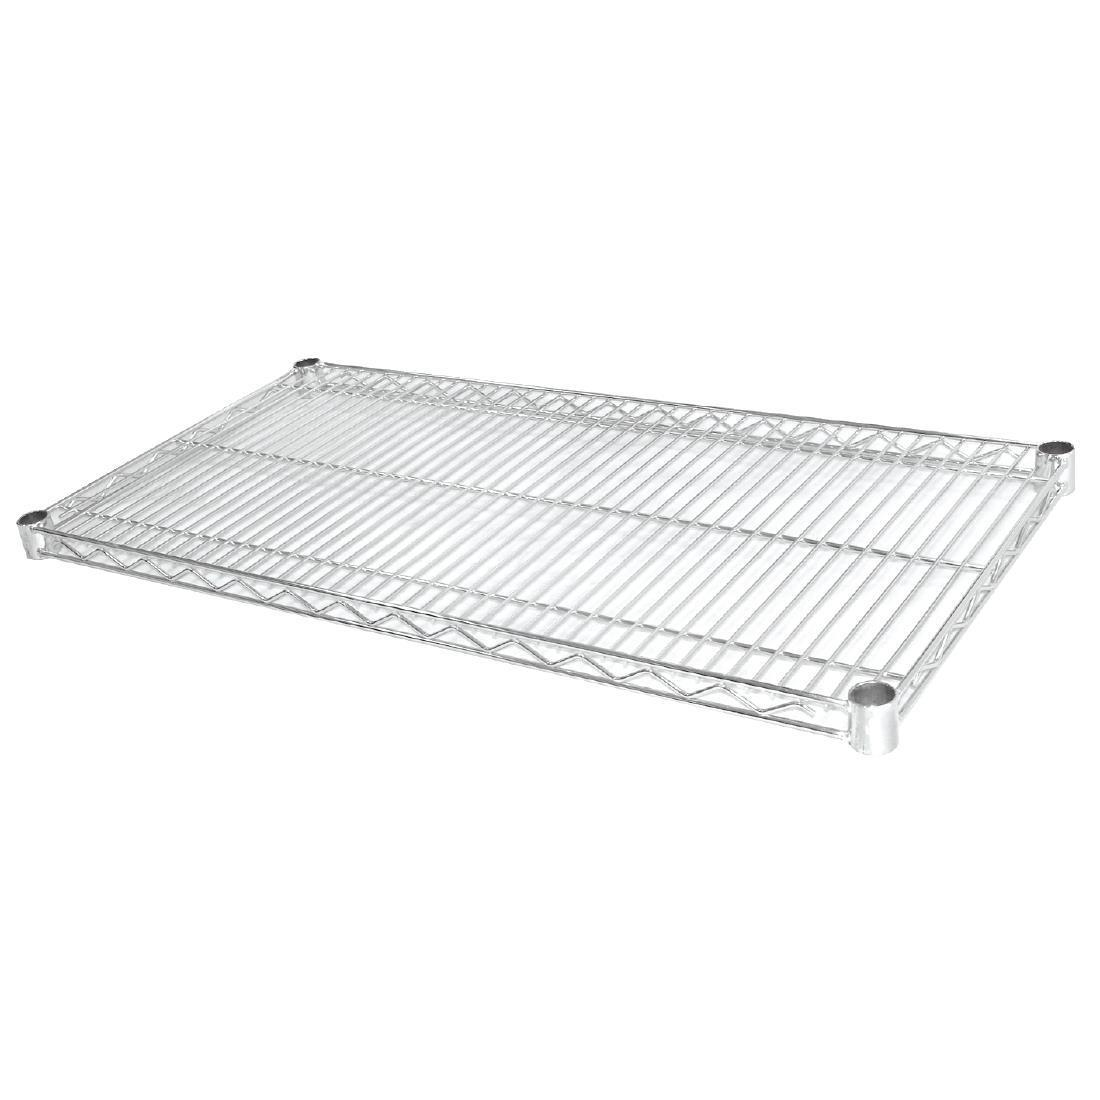 Vogue Chrome Wire Shelves 1220x610mm Pack of 2 - U893